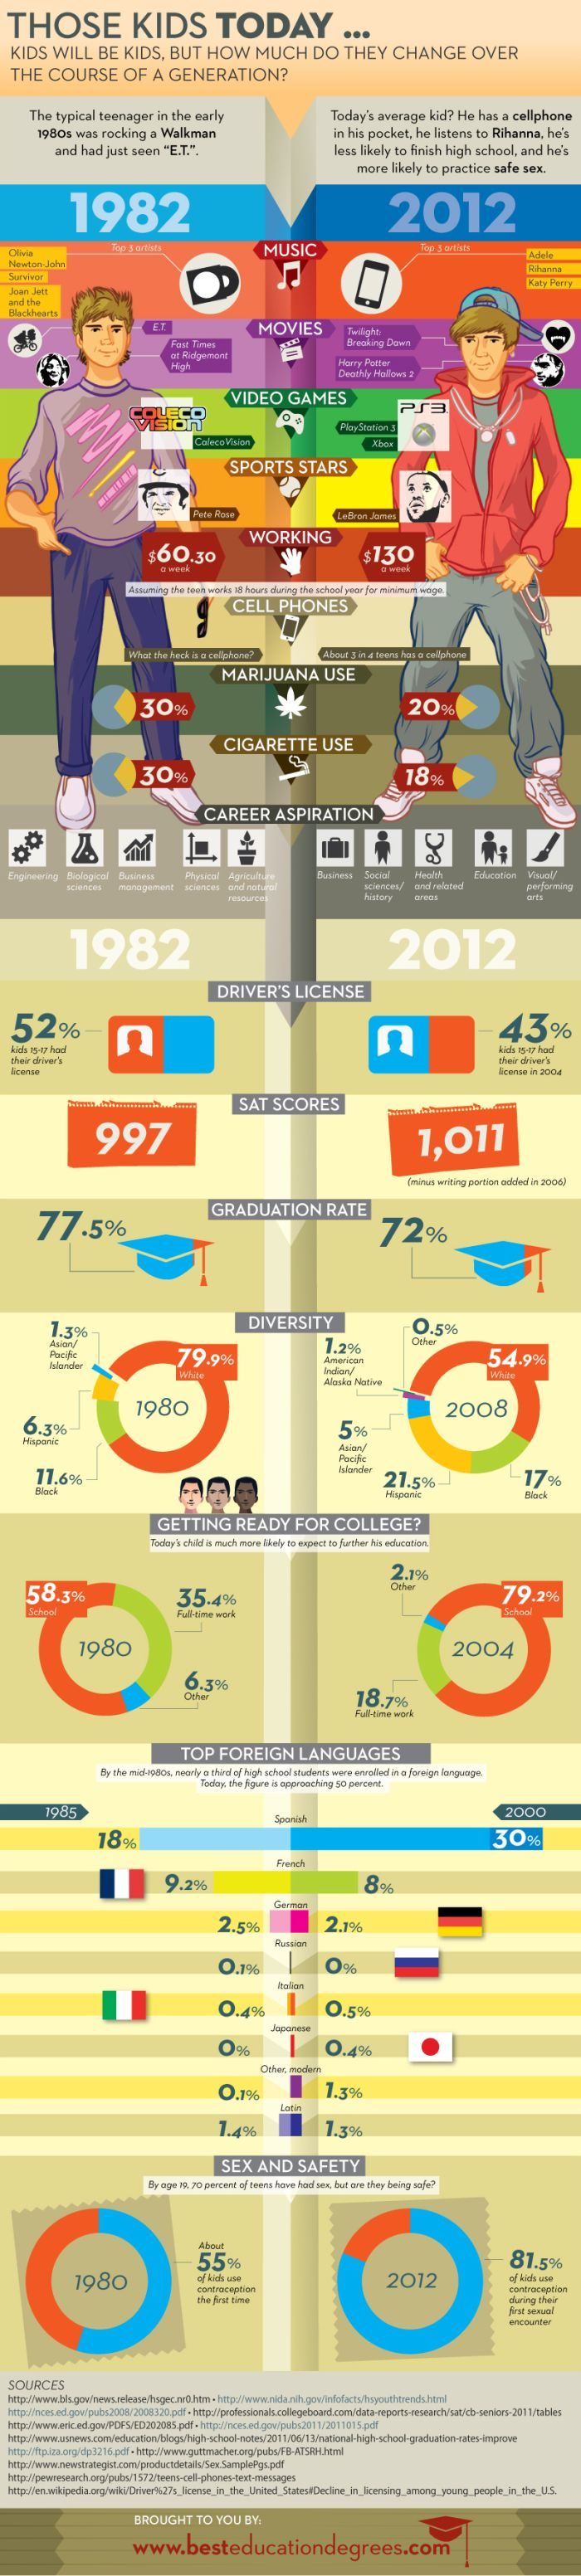 Kids of 1982 vs Kids of 2012 (infographic)